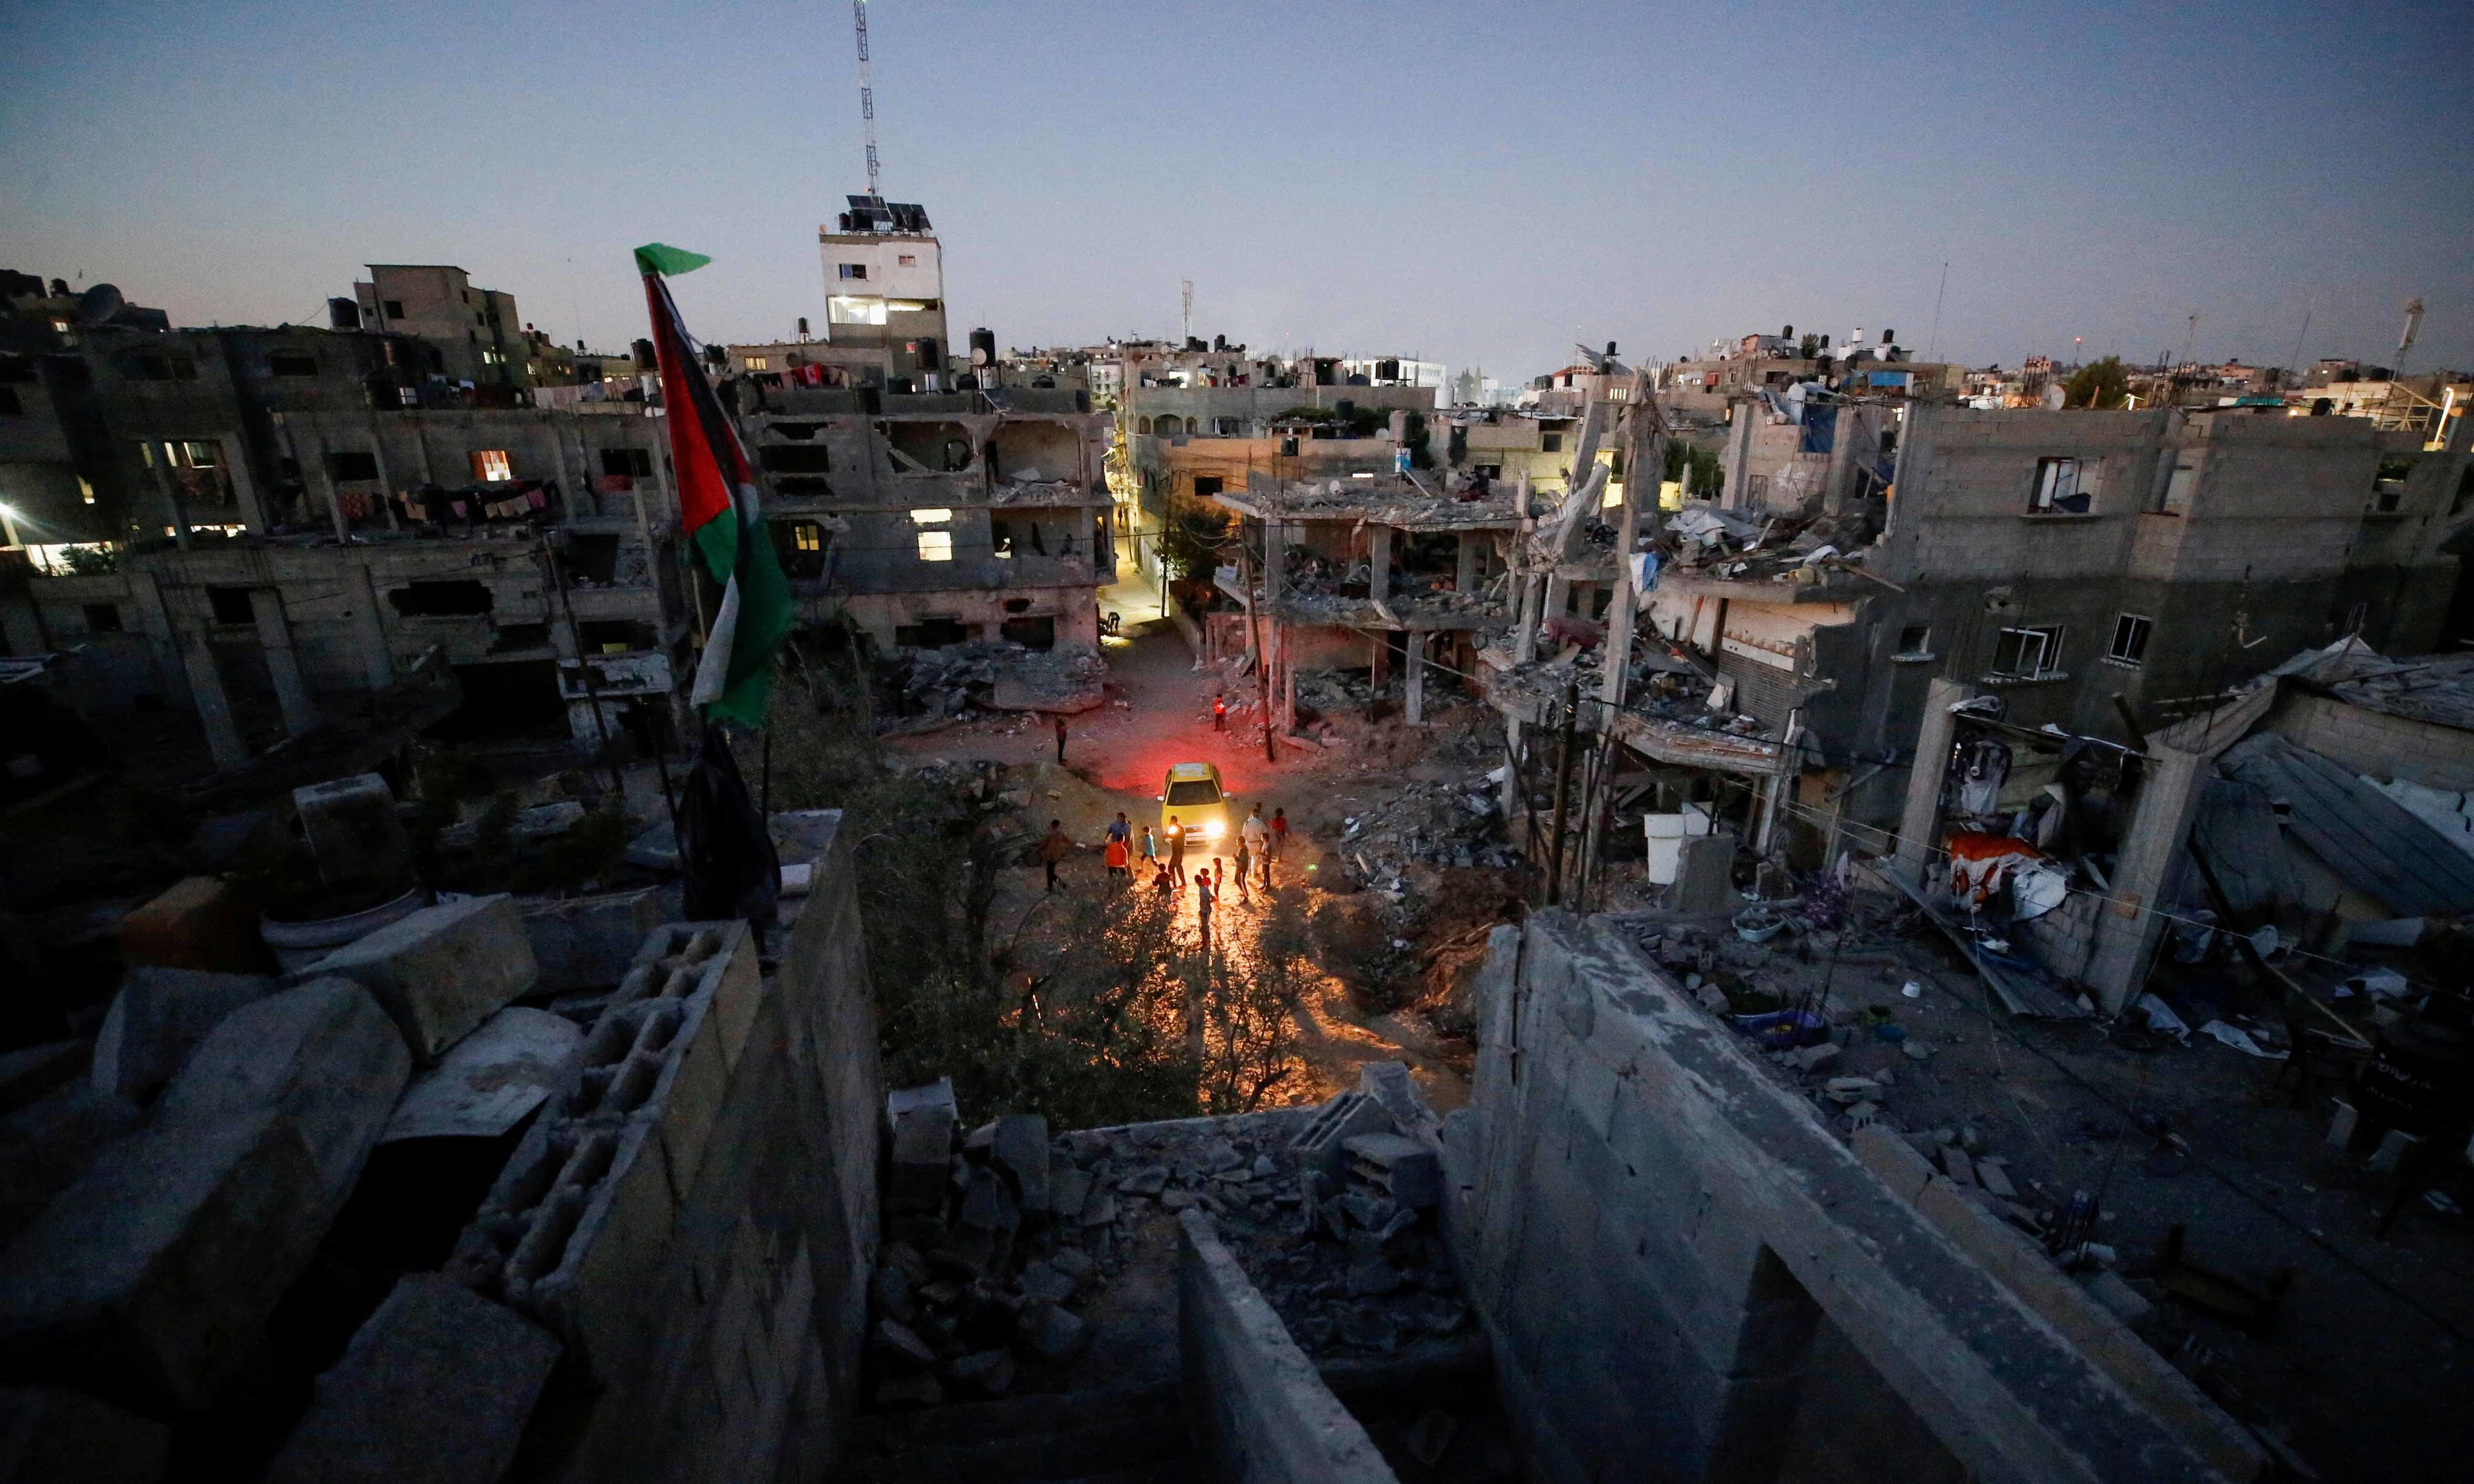 A general view of damaged houses which were destroyed by Israeli air strikes during the Israel-Hamas fighting, in Gaza Strip, May 23. — Reuters